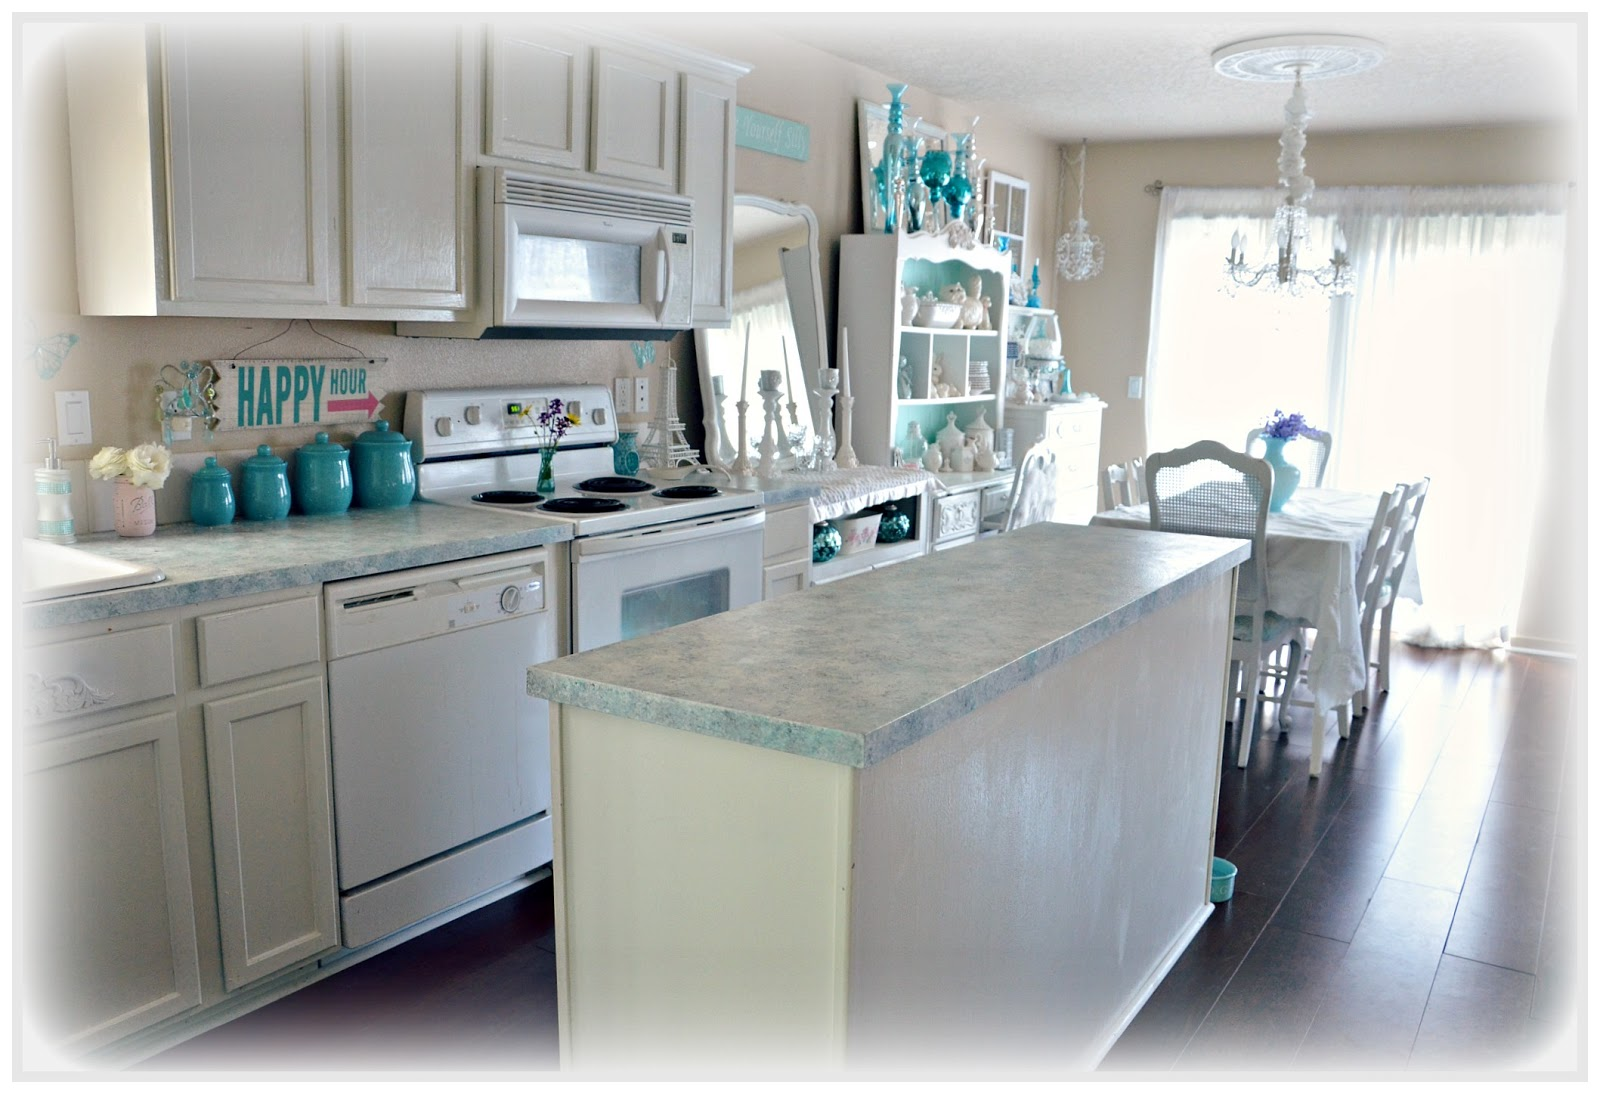 Countertop Paint Problems : ... So Shabby - Shabby Chic: Giani Granite Countertop Paint One Year Later